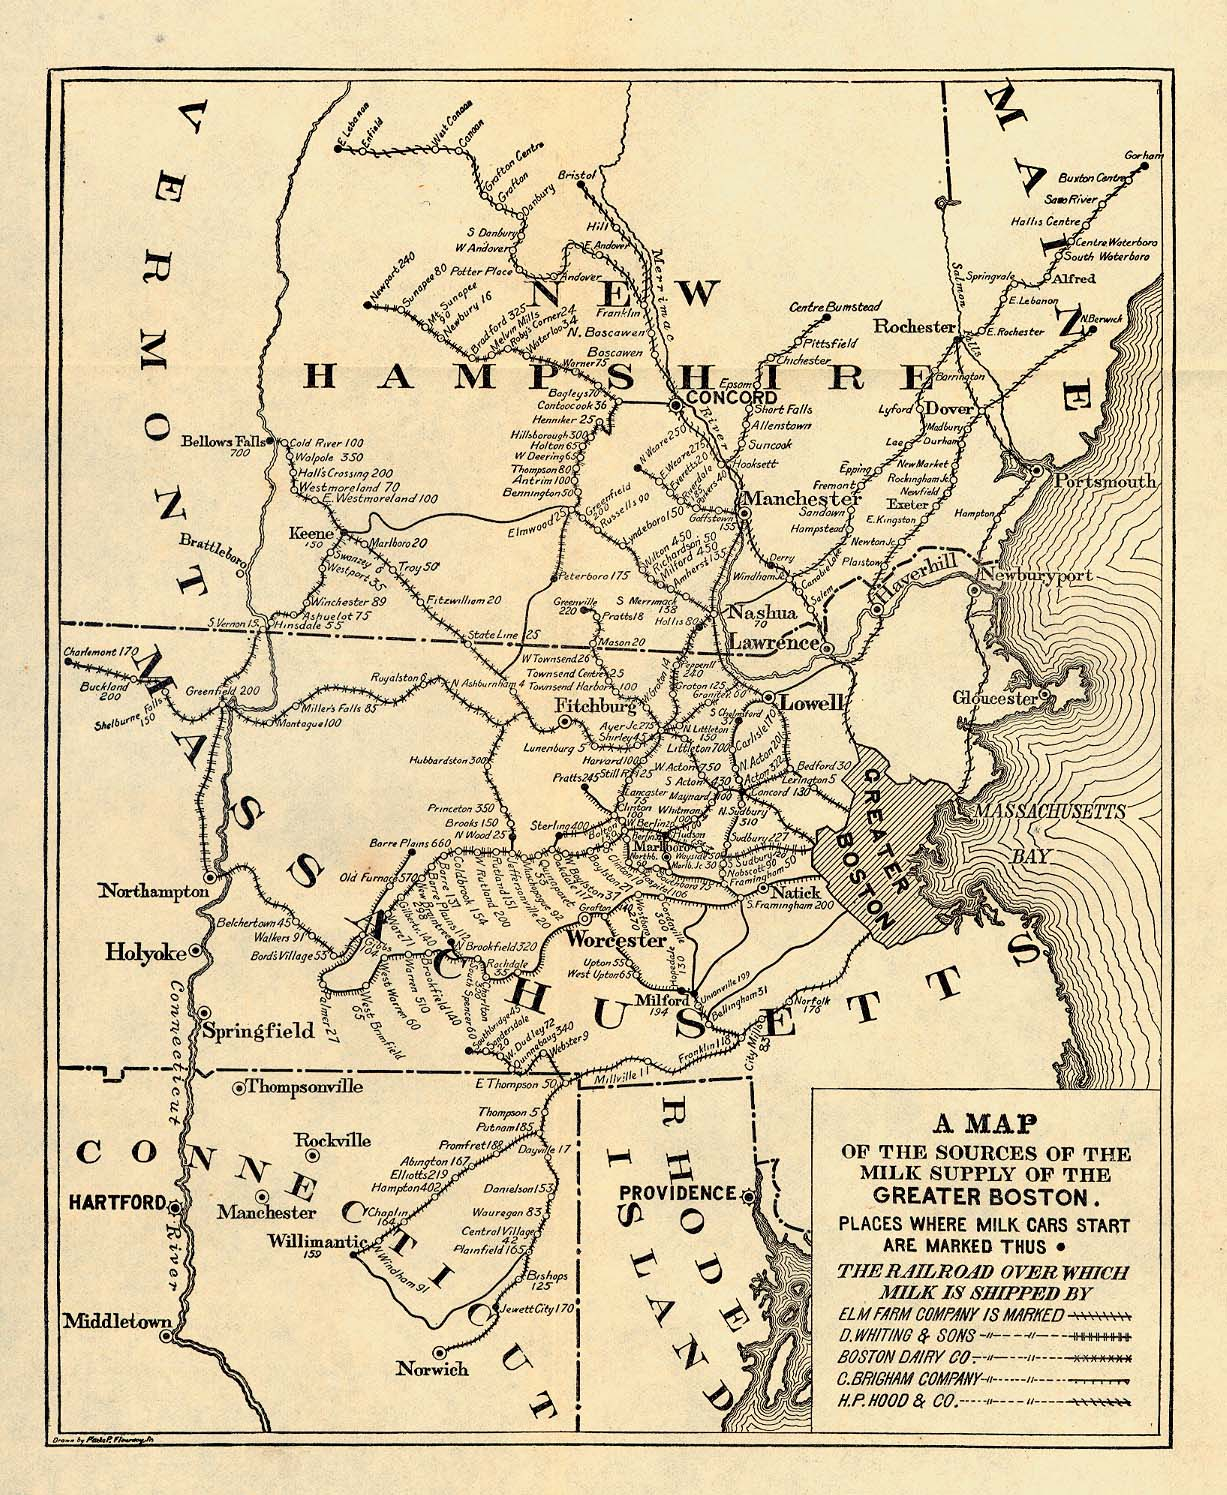 Boston maps atlases and city streets directories bu libraries 655k boston massachusetts 1901a malvernweather Choice Image